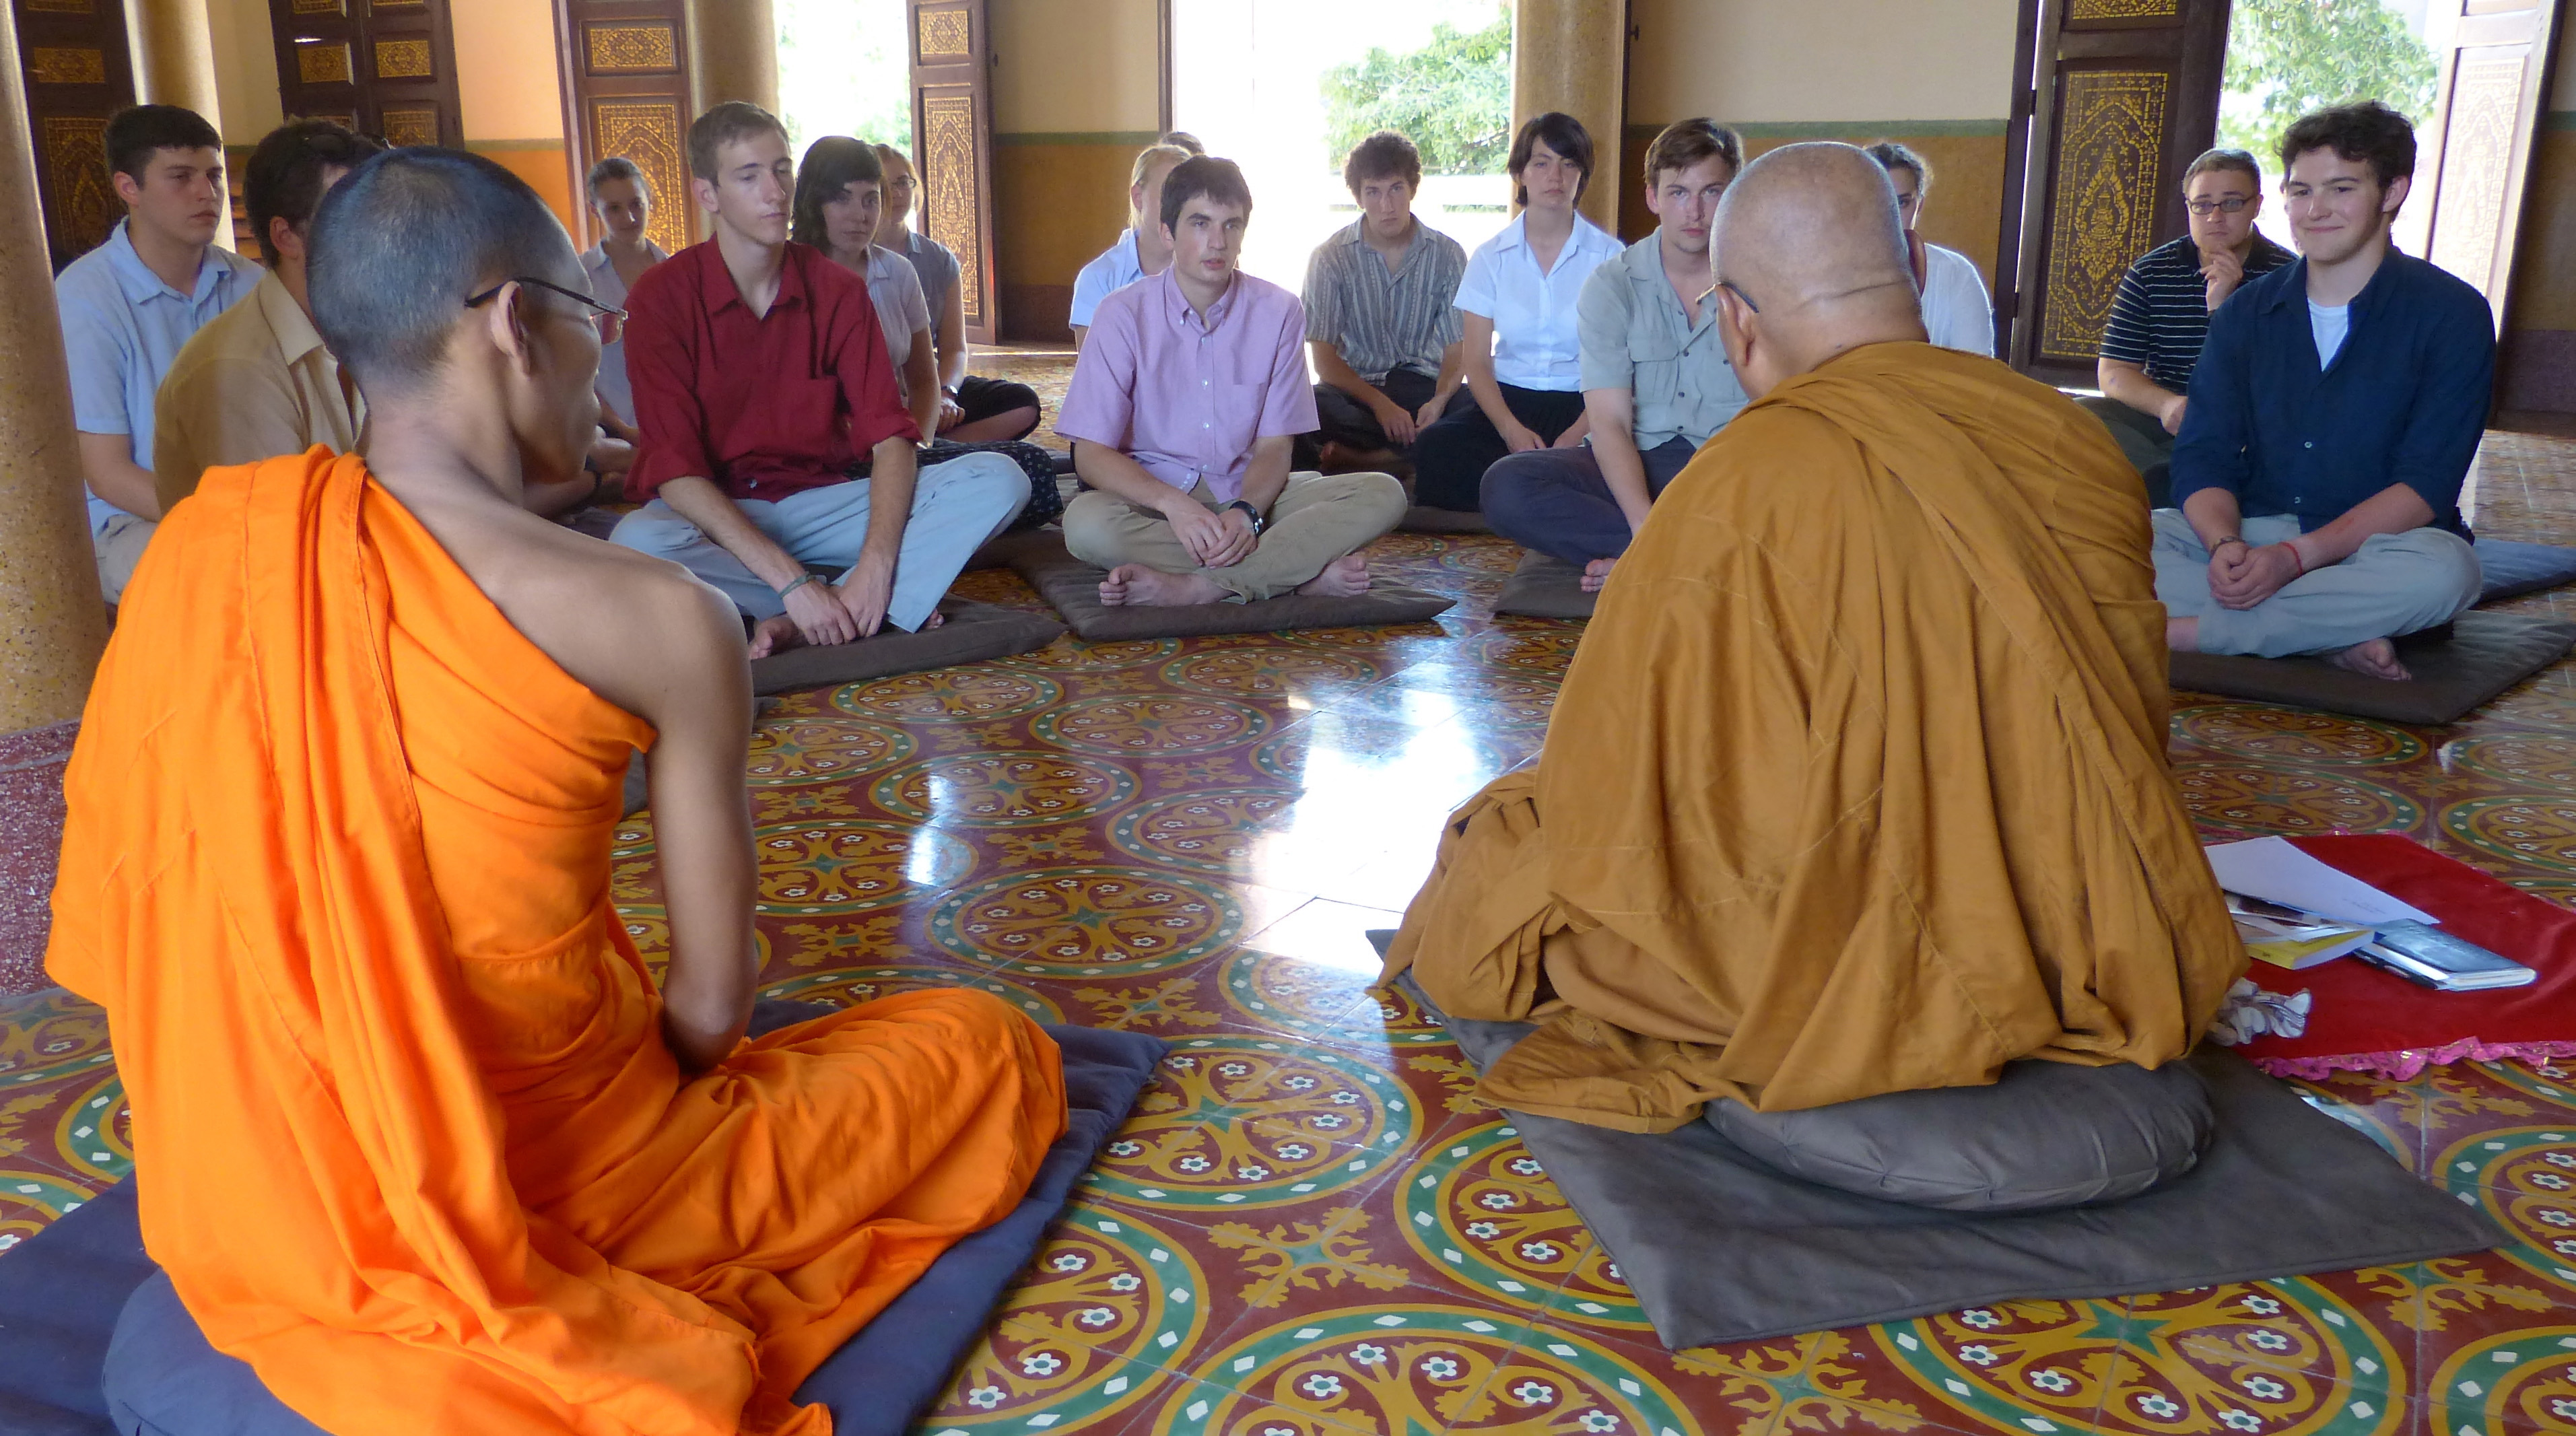 Buddhist religious experiences during service abroad programs incorporate diversity.